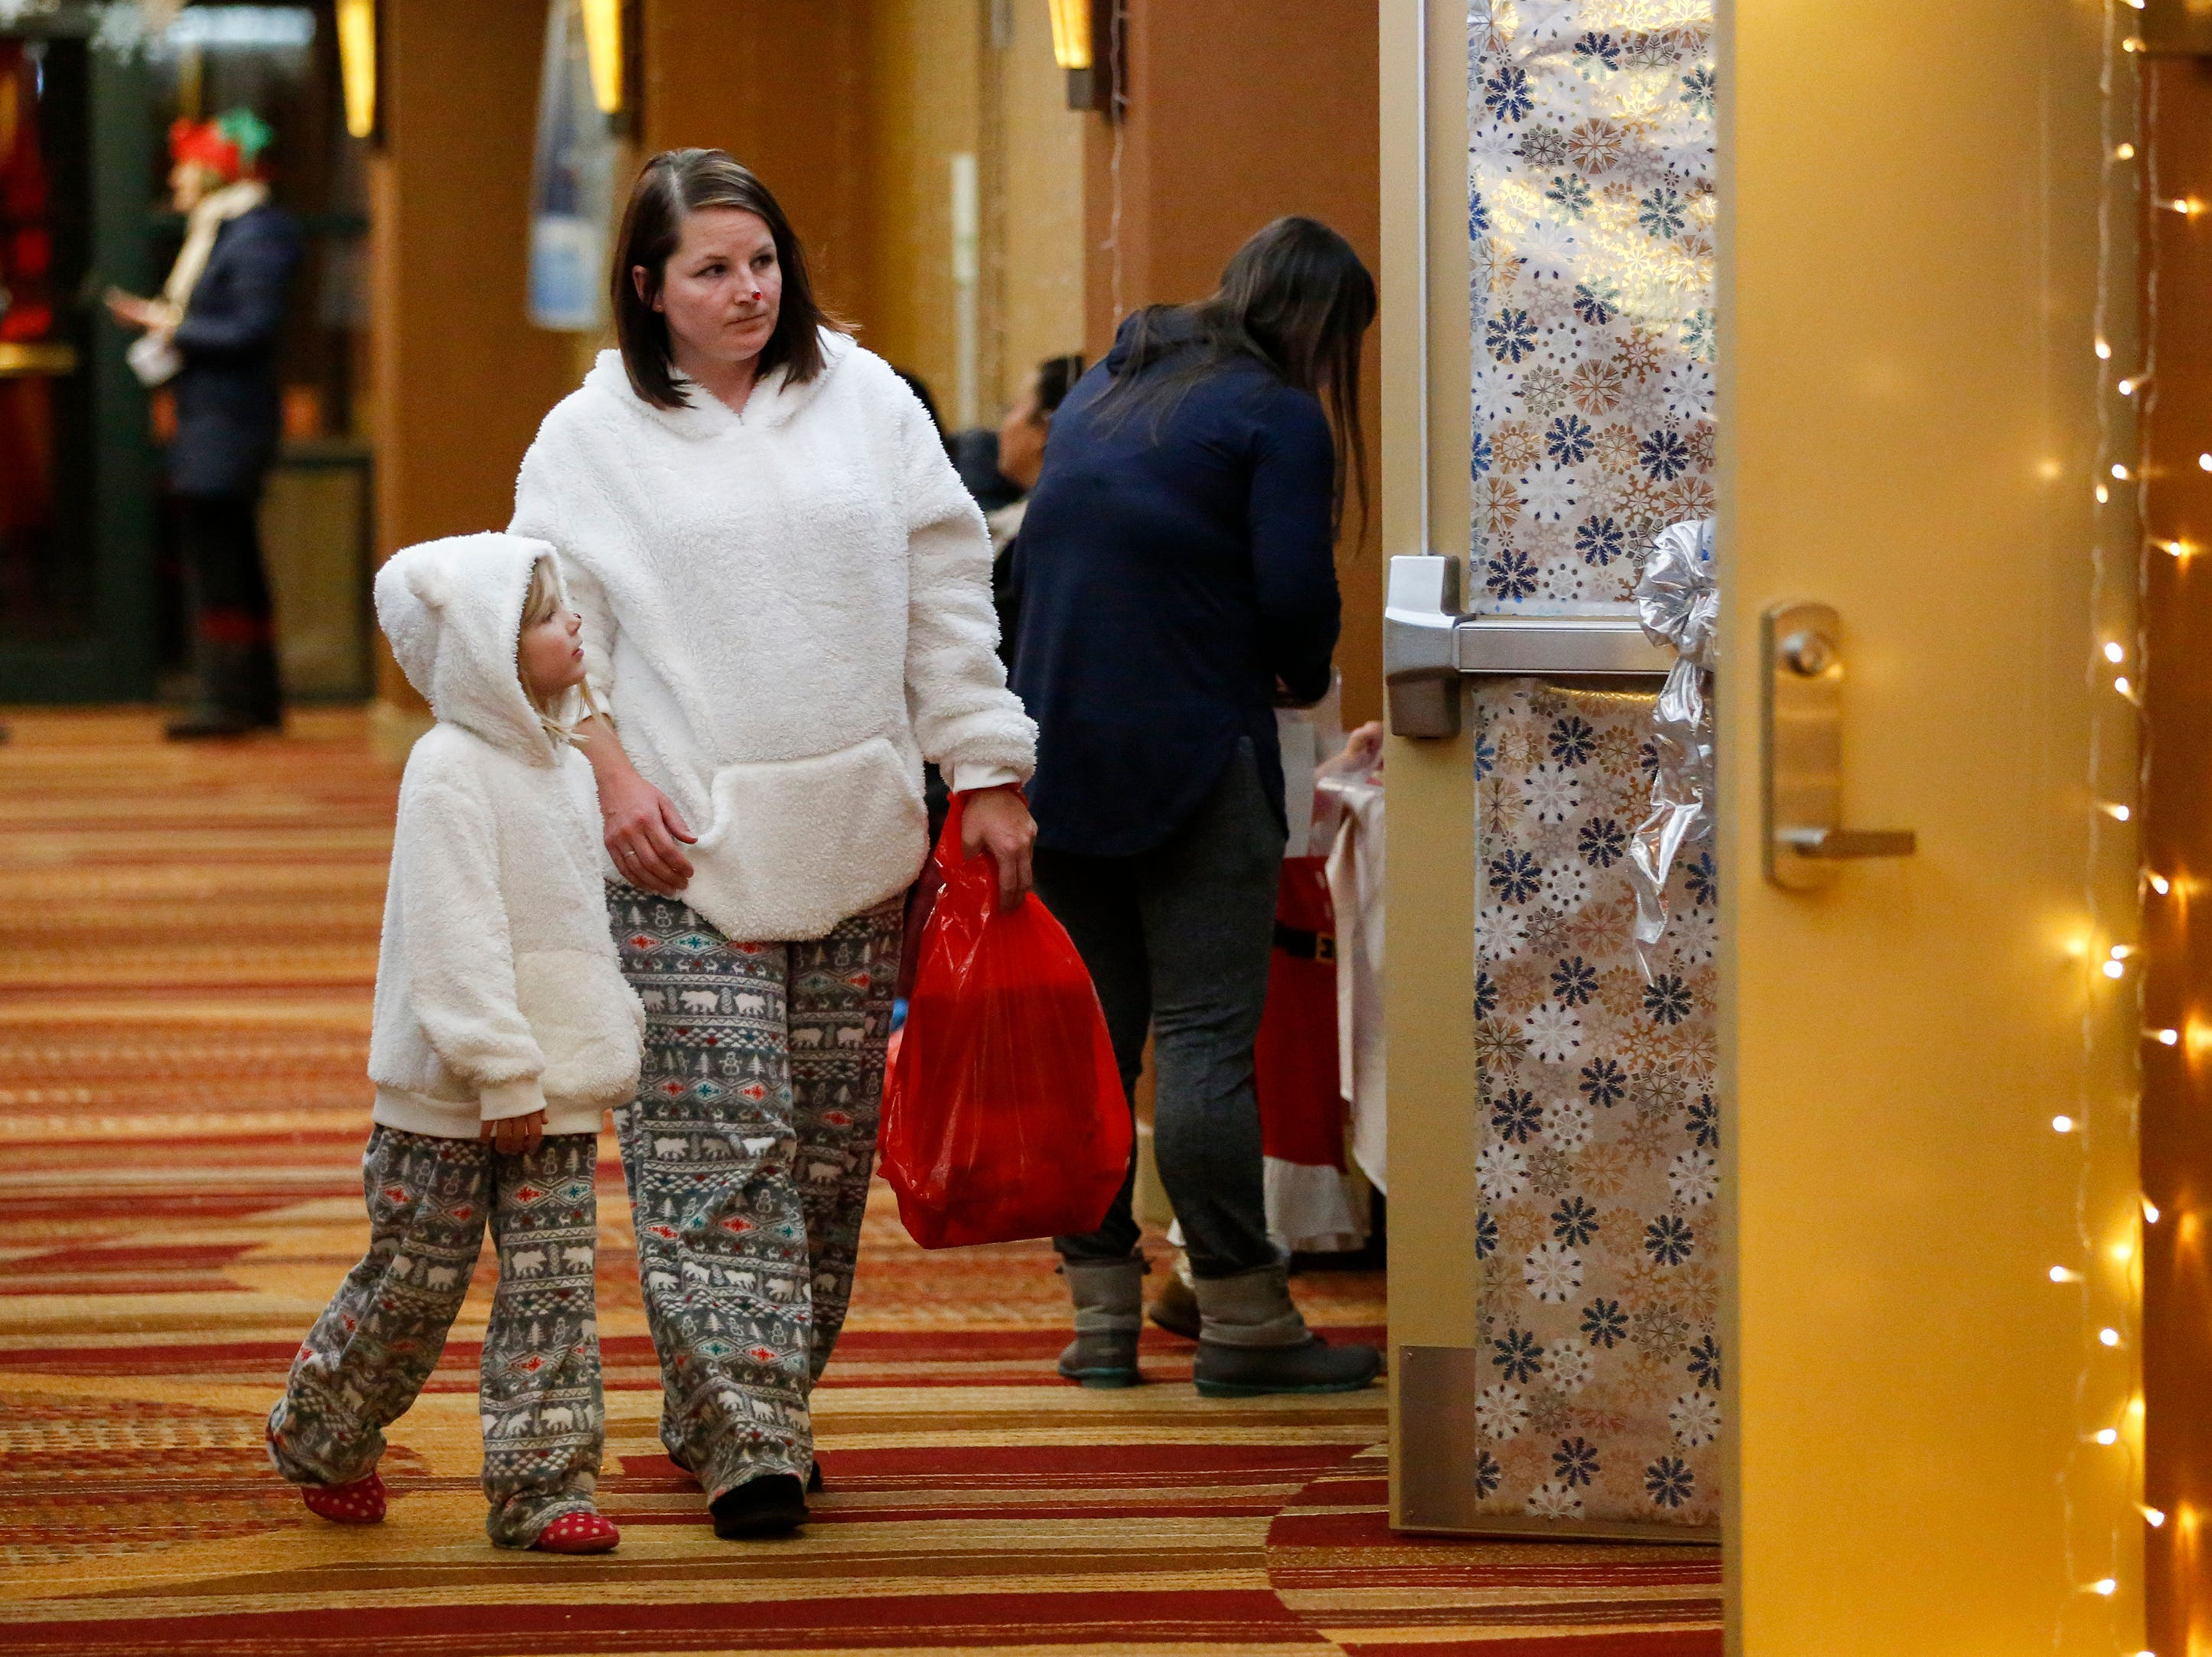 People make their way to Santa's workshop at Santa's North Pole at the Holiday Inn Saturday, December 8, 2018, in Manitowoc, Wis. Joshua Clark/USA TODAY NETWORK-Wisconsin